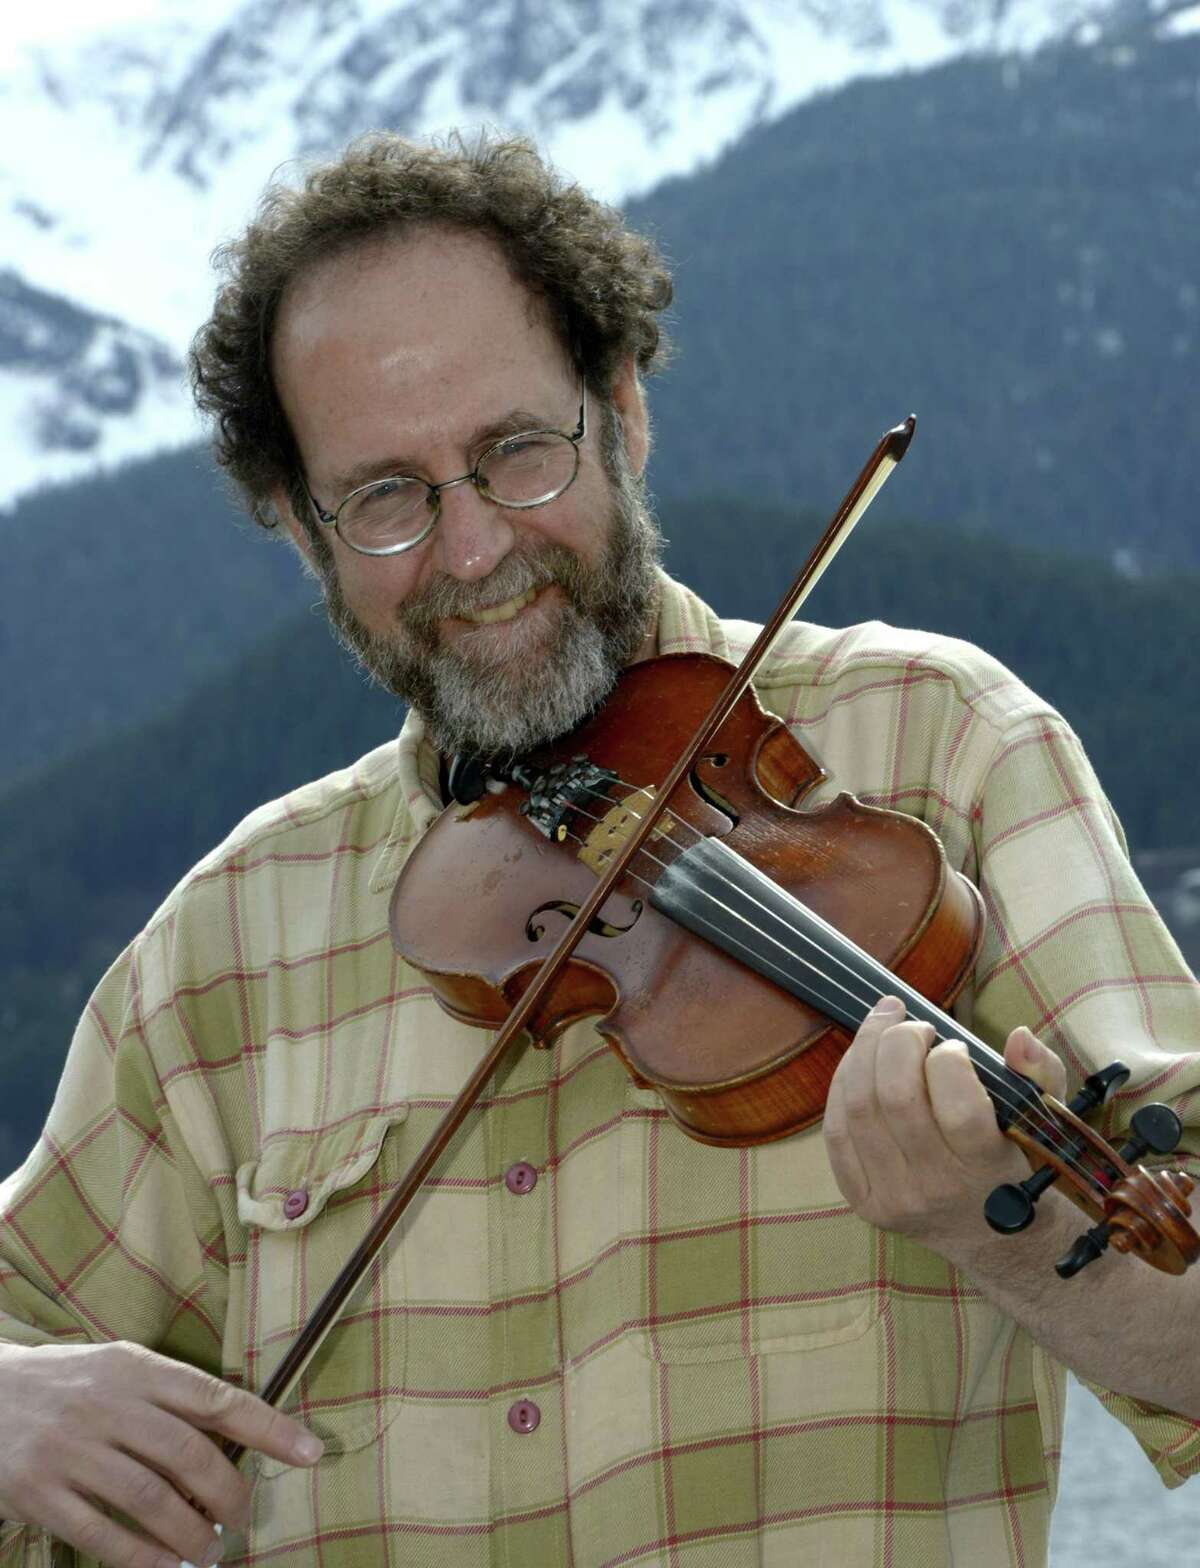 PAIR OF CONCERTS: Alaska's fiddling poet Ken Waldman returns with his show to The Buttonwood Tree, 605 Main St. in Middletown, for the first time in over a decade Sunday, June 9, at 6:30 p.m. Tickets are $15; www.buttonwood.org or 860-347-4957. Then, on Tuesday, June 11, Waldman brings Binghamton musicians, Brian Vollmer and Claire Byrne to join him for two shows in New Haven at The International Festival of Arts & Ideas at 1:15 p.m. on the Green.